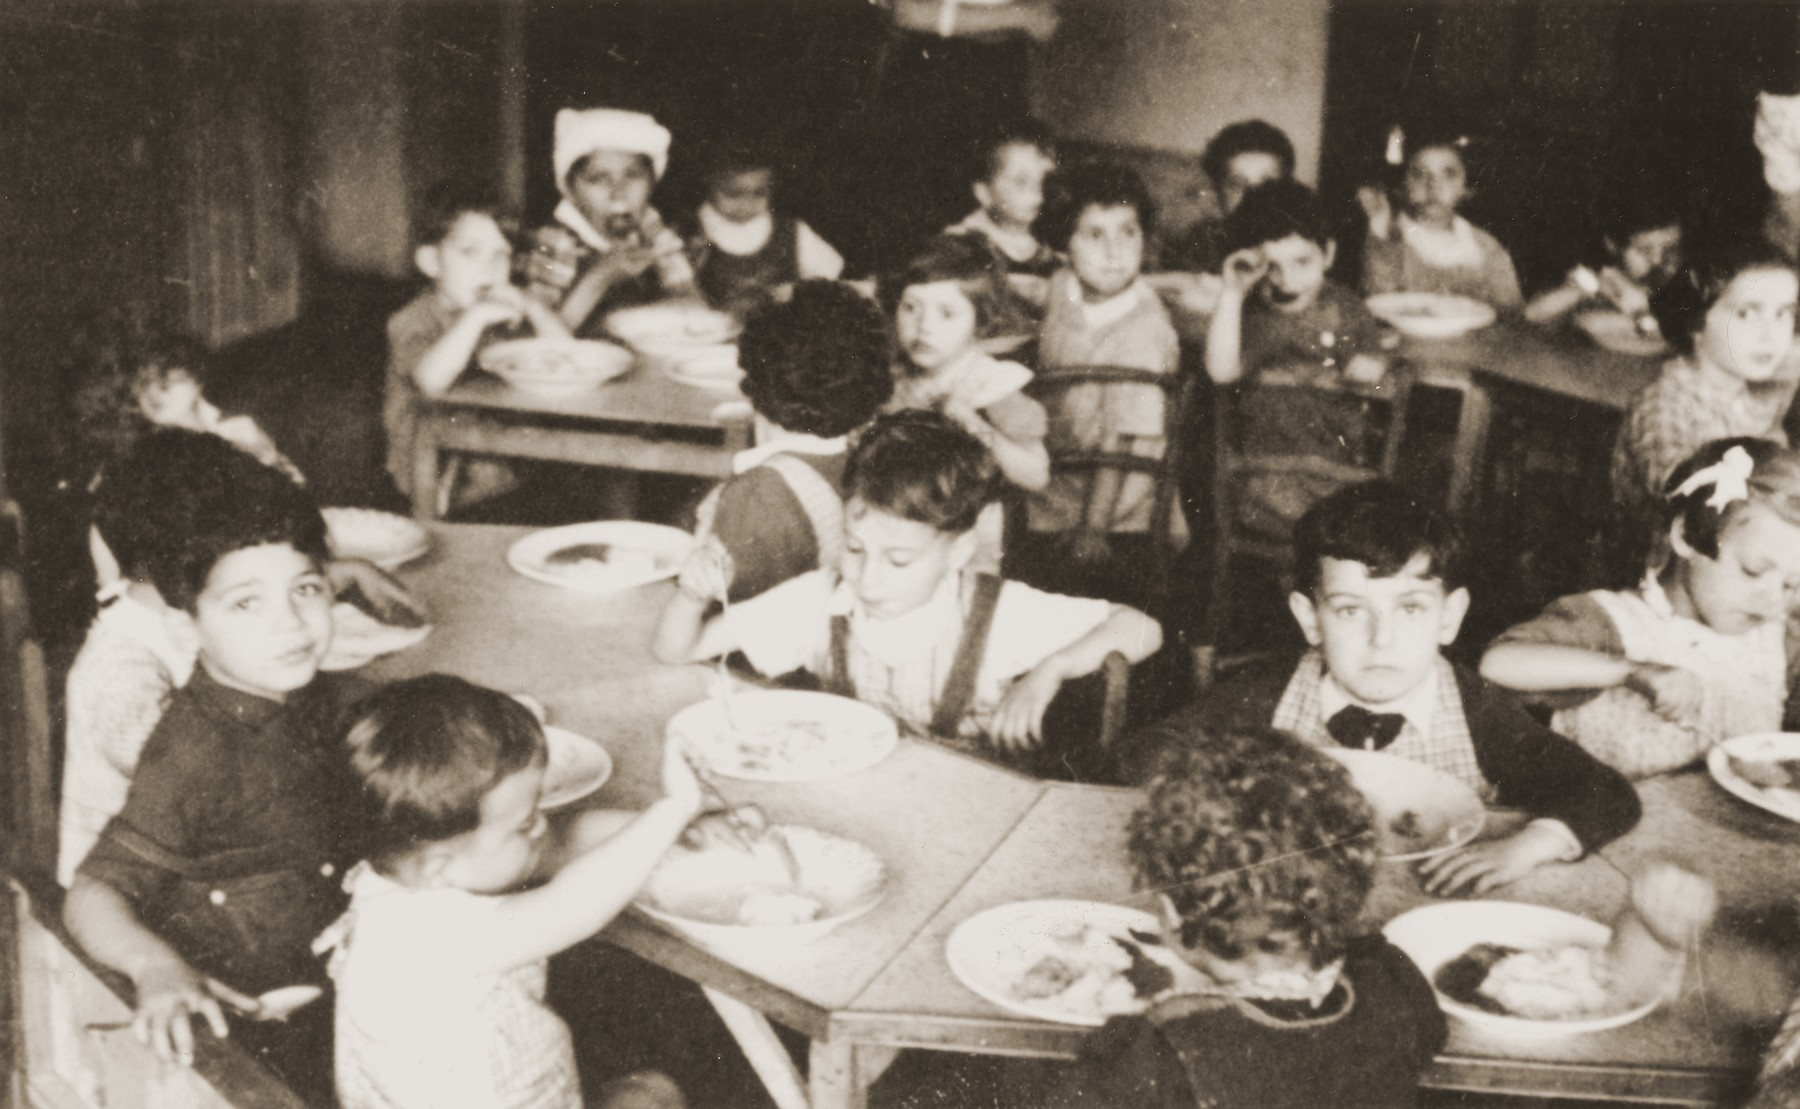 Toddlers at the La Pouponniere children's home in Belgium eat a meal in the dining room.